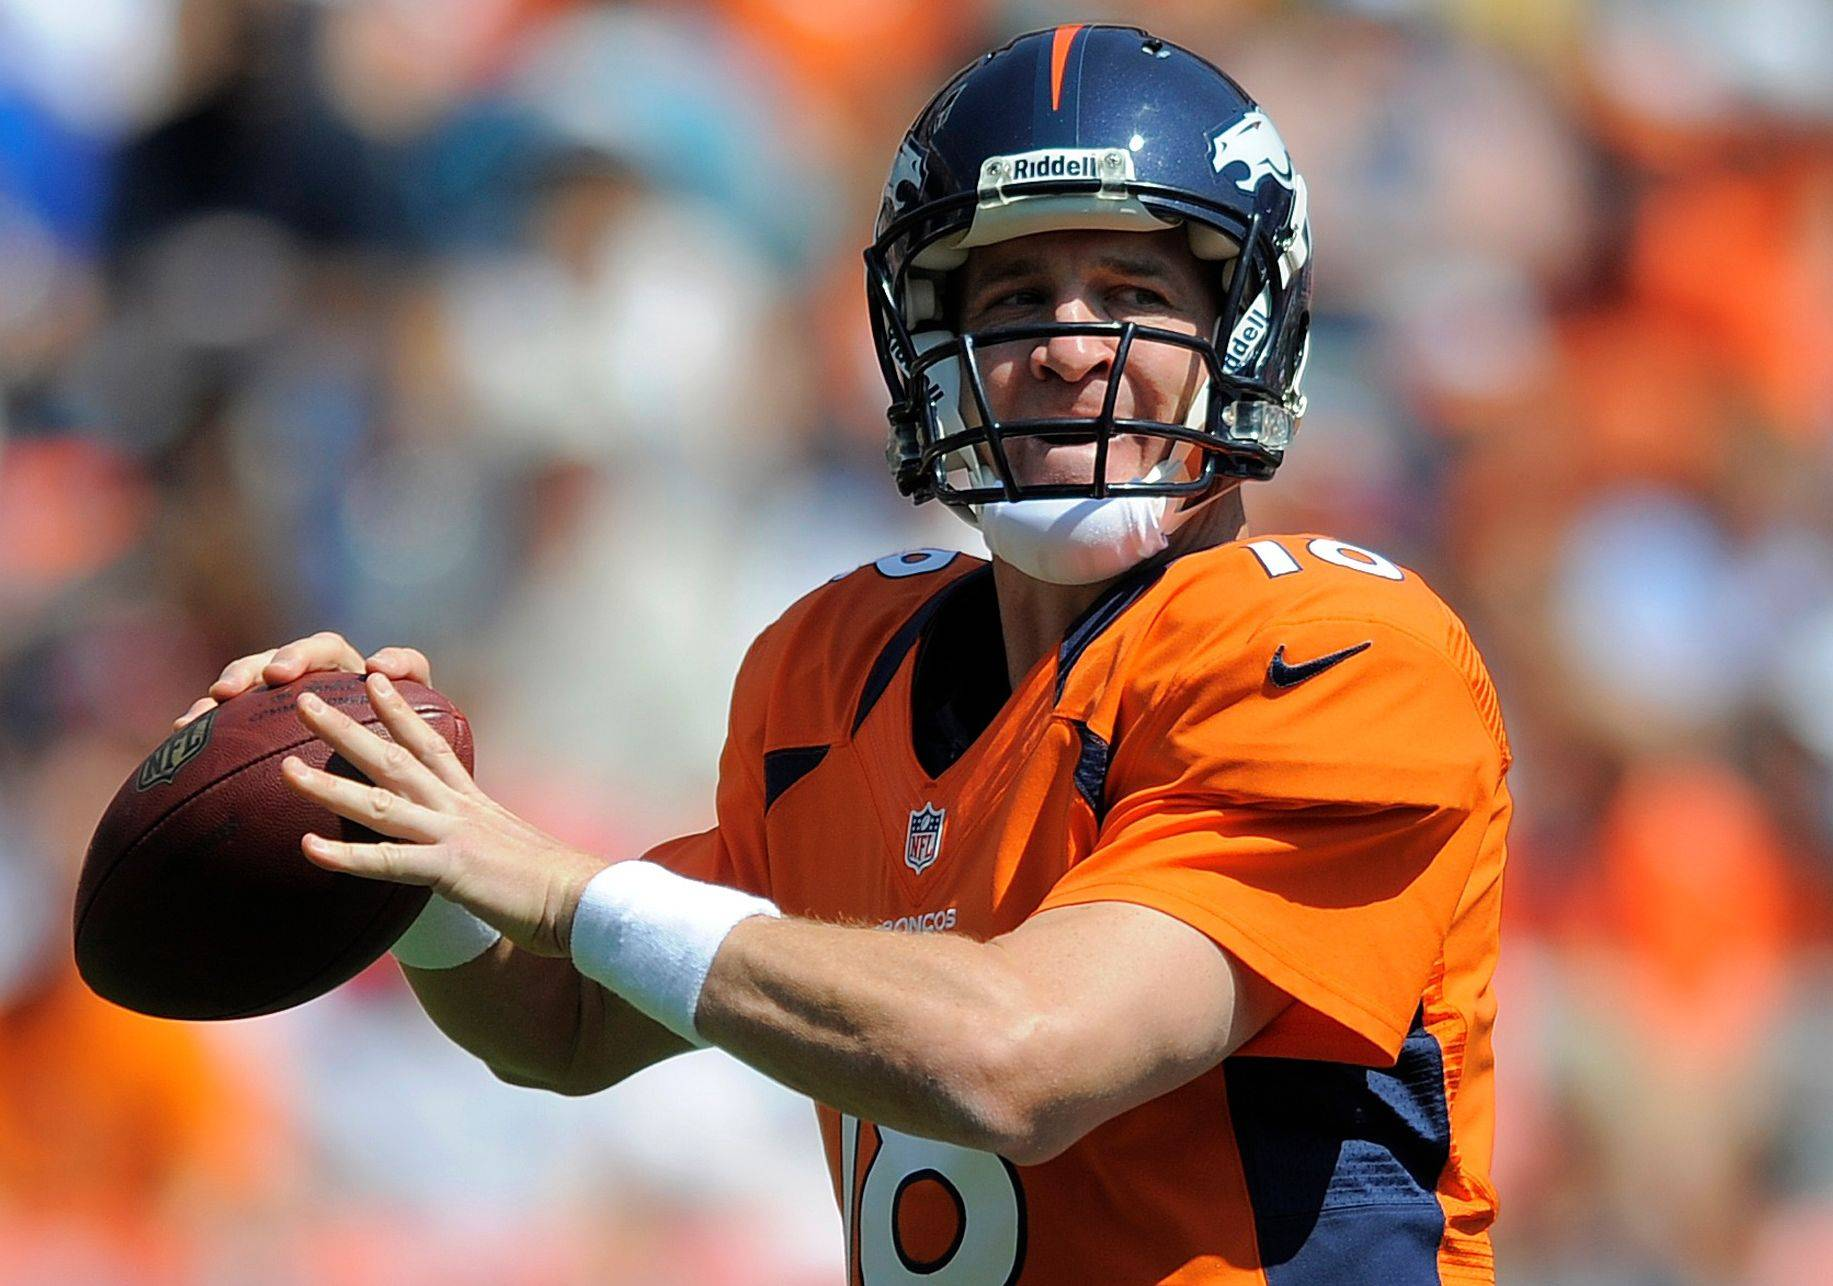 In Peyton Manning's worst season, he still threw 26 touchdown passes. The question is, will he fare well enough in Denver to warrant being an every-week fantasy starter in 2012?